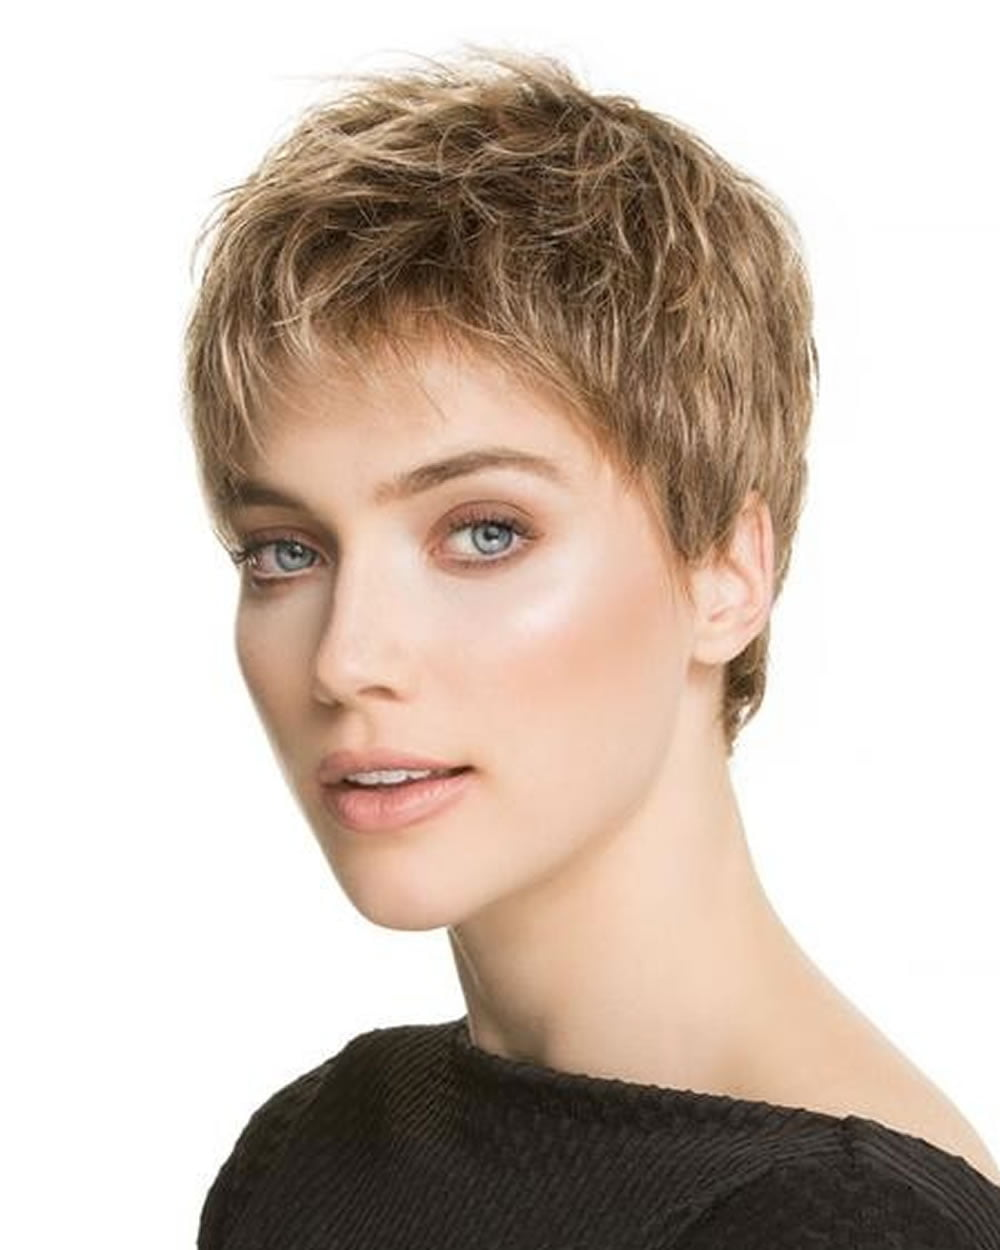 Curly Very Short Pixie Haircut For Girls Hairstyles